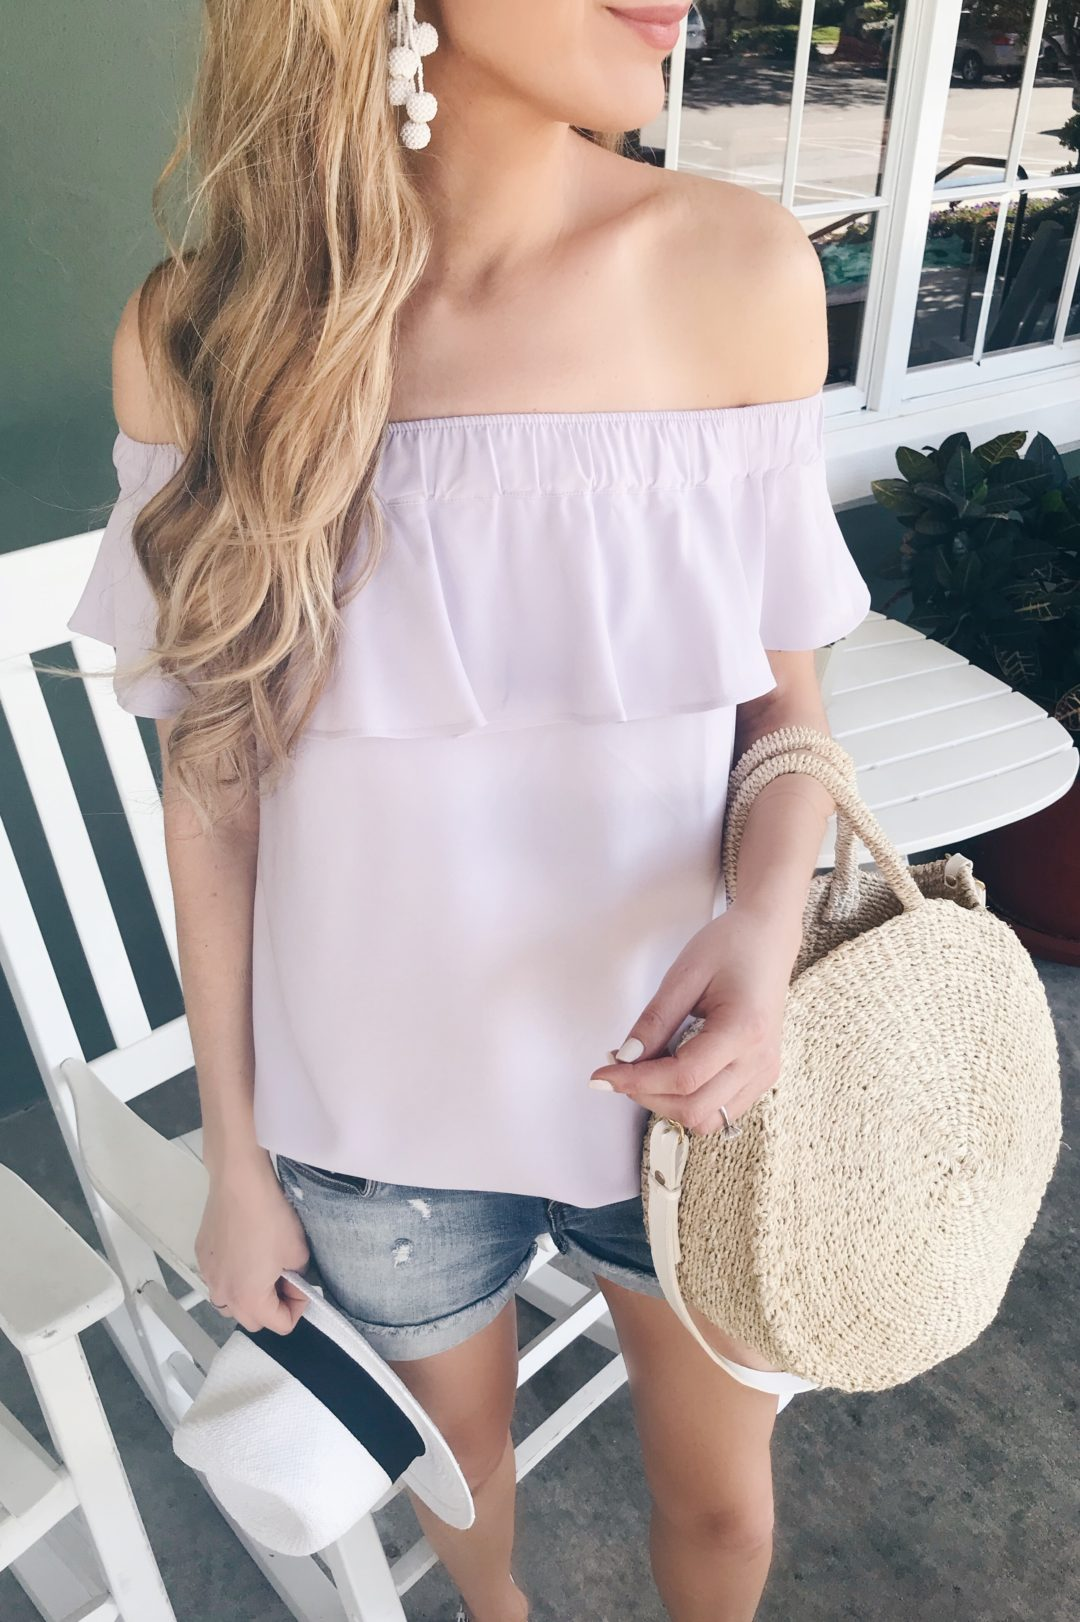 tips for packing light - wear you sundress tucked in as a shirt on pinterestingplans connecticut lifestyle blog